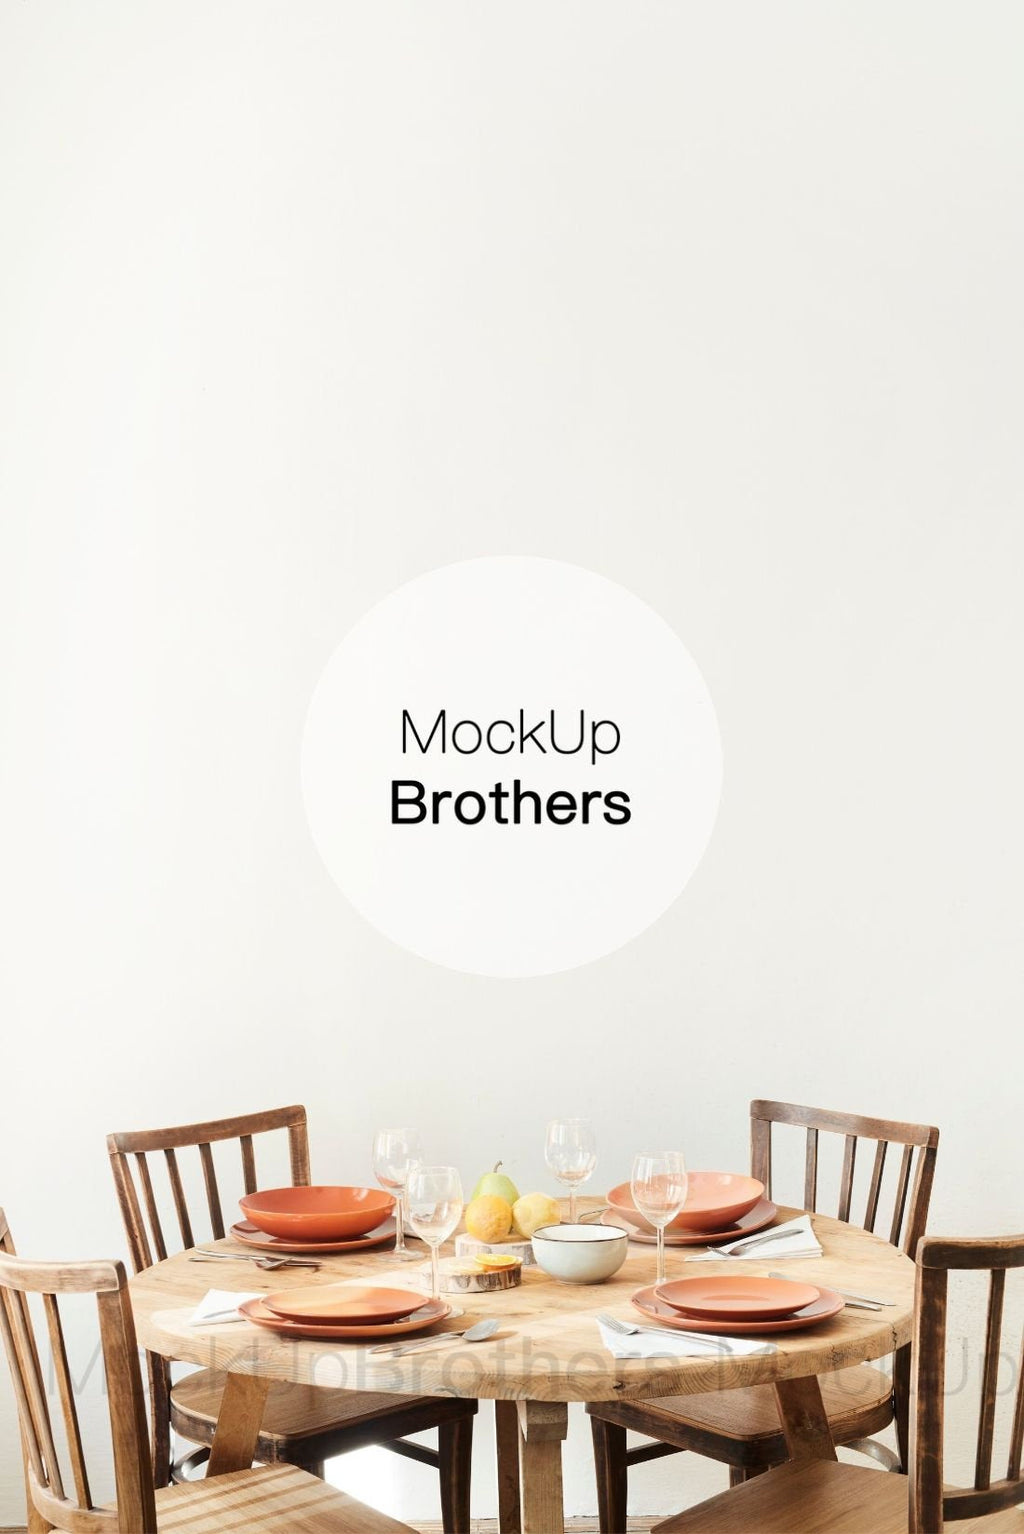 Kitchen wall art mockup by Mockup Brothers